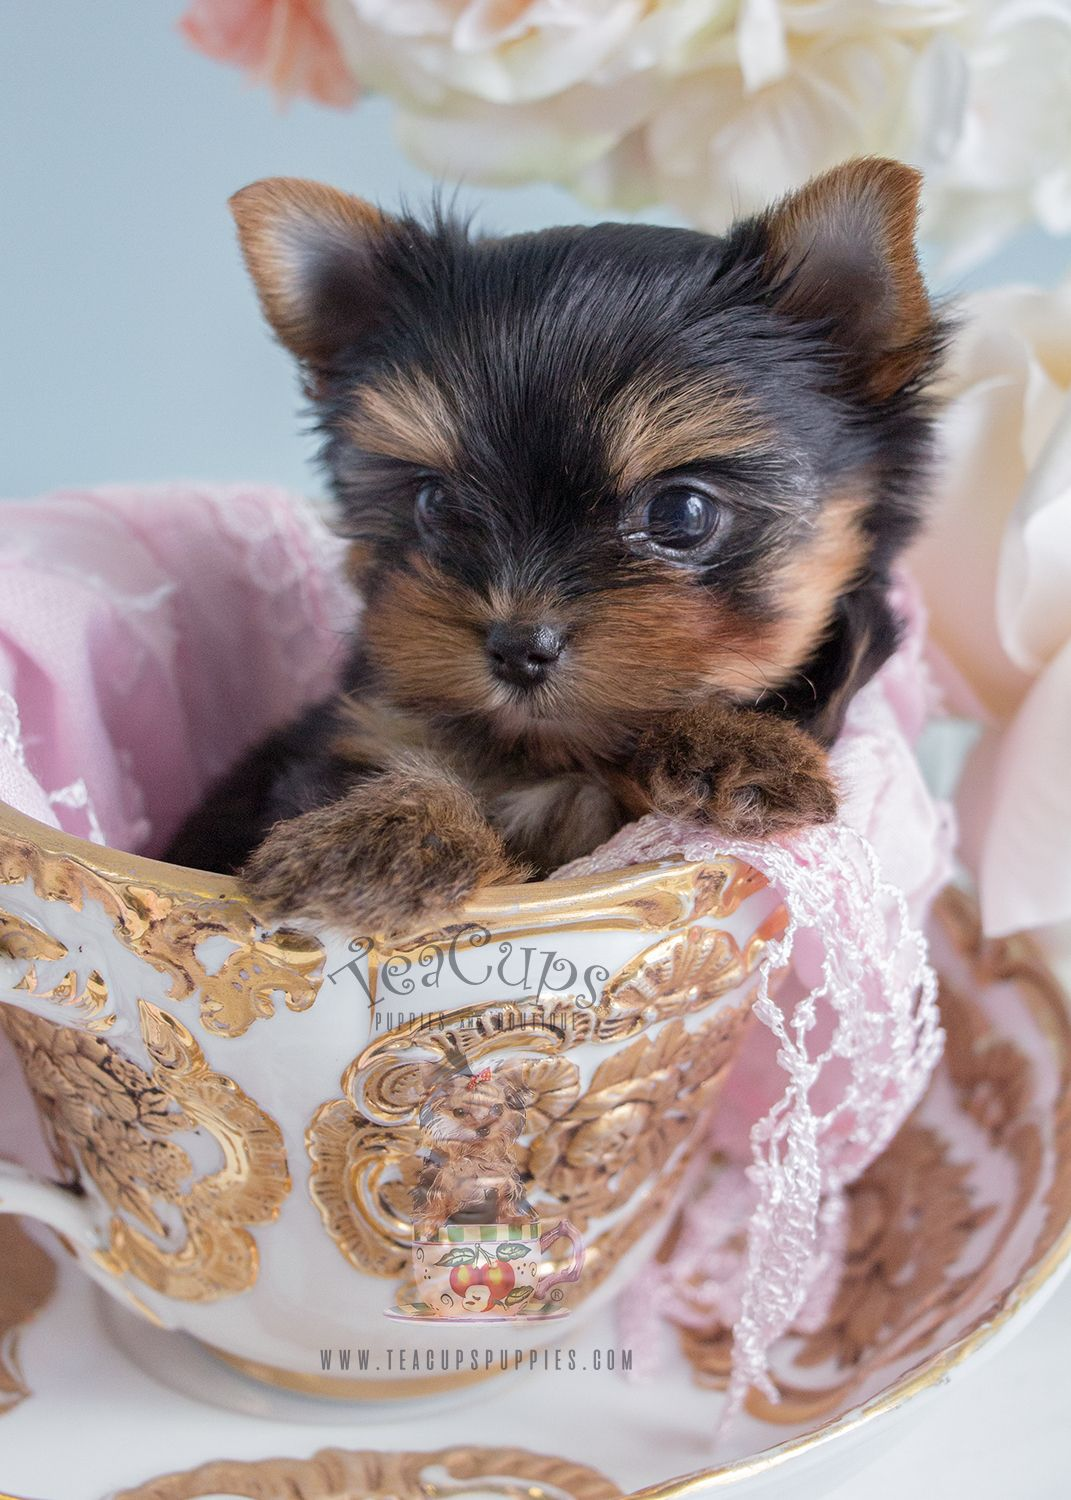 where can i buy a teacup yorkie teacup yorkie puppy teacup yorkies yorkie puppies 6755